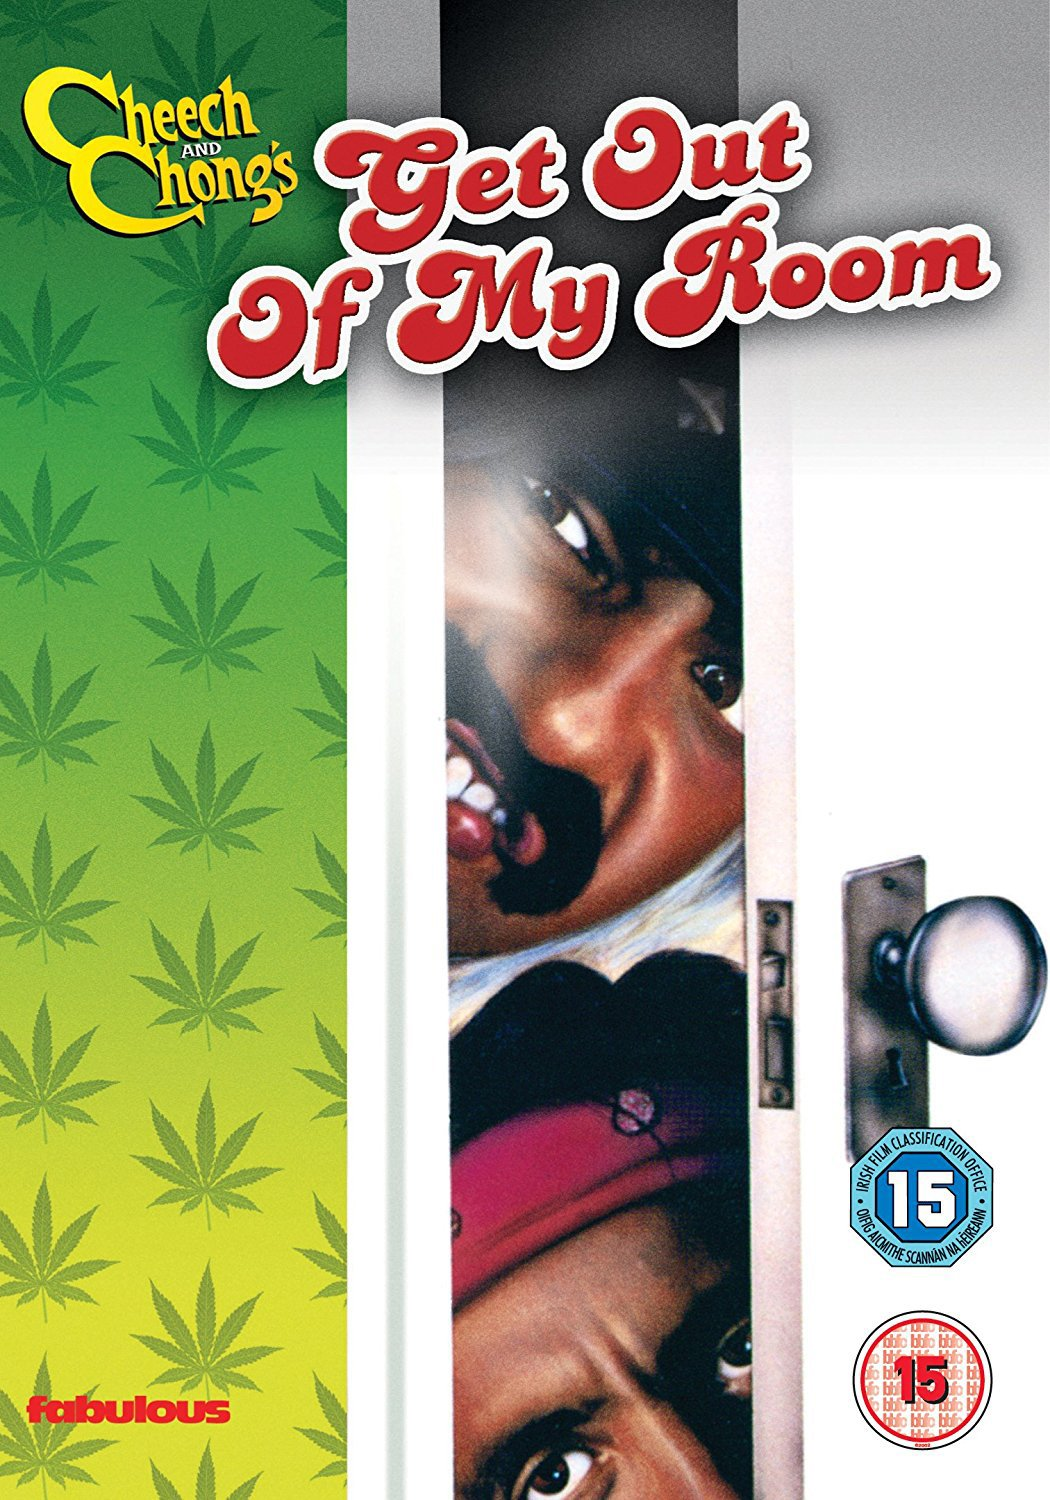 Cheech and Chong: Get Out of My Room [Region 2]